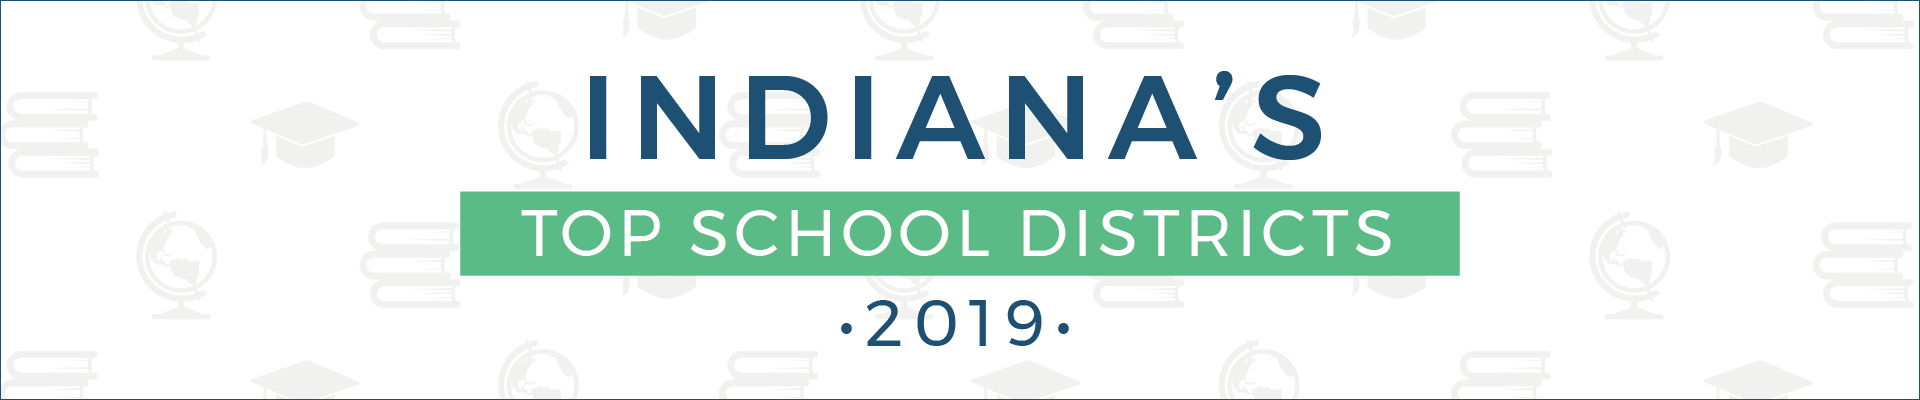 top school districts, 2019 - indiana - banner